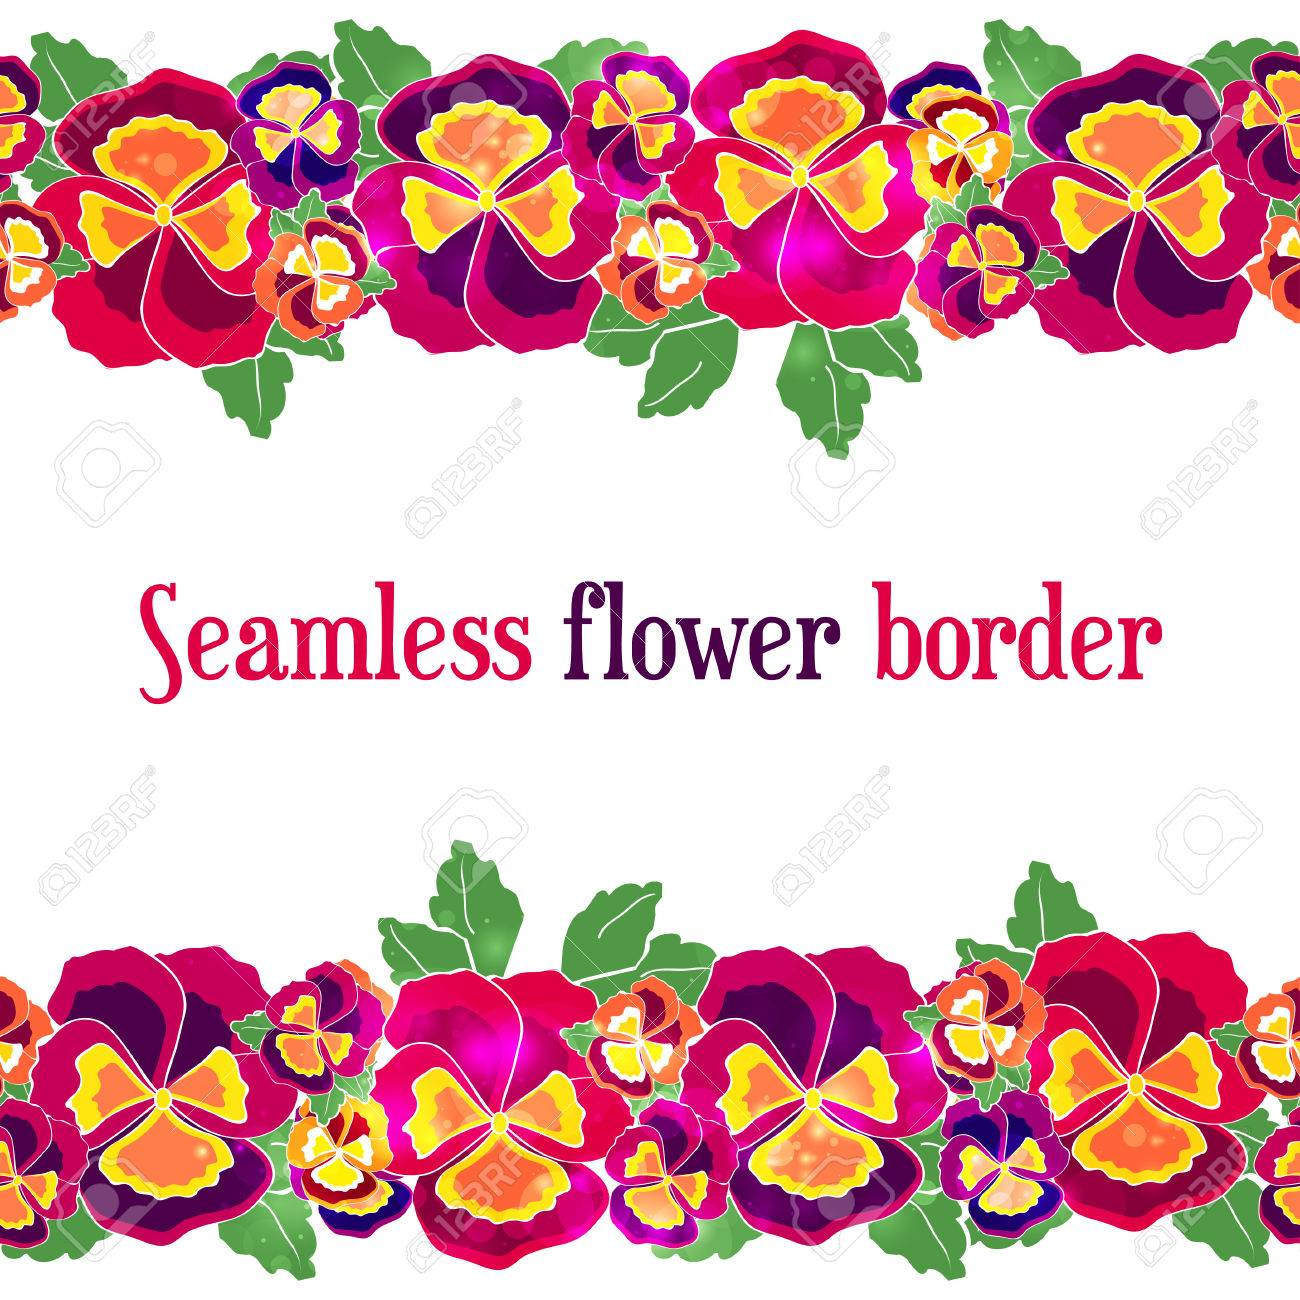 Vector Seamless Floral Border Design For Wedding Invitation